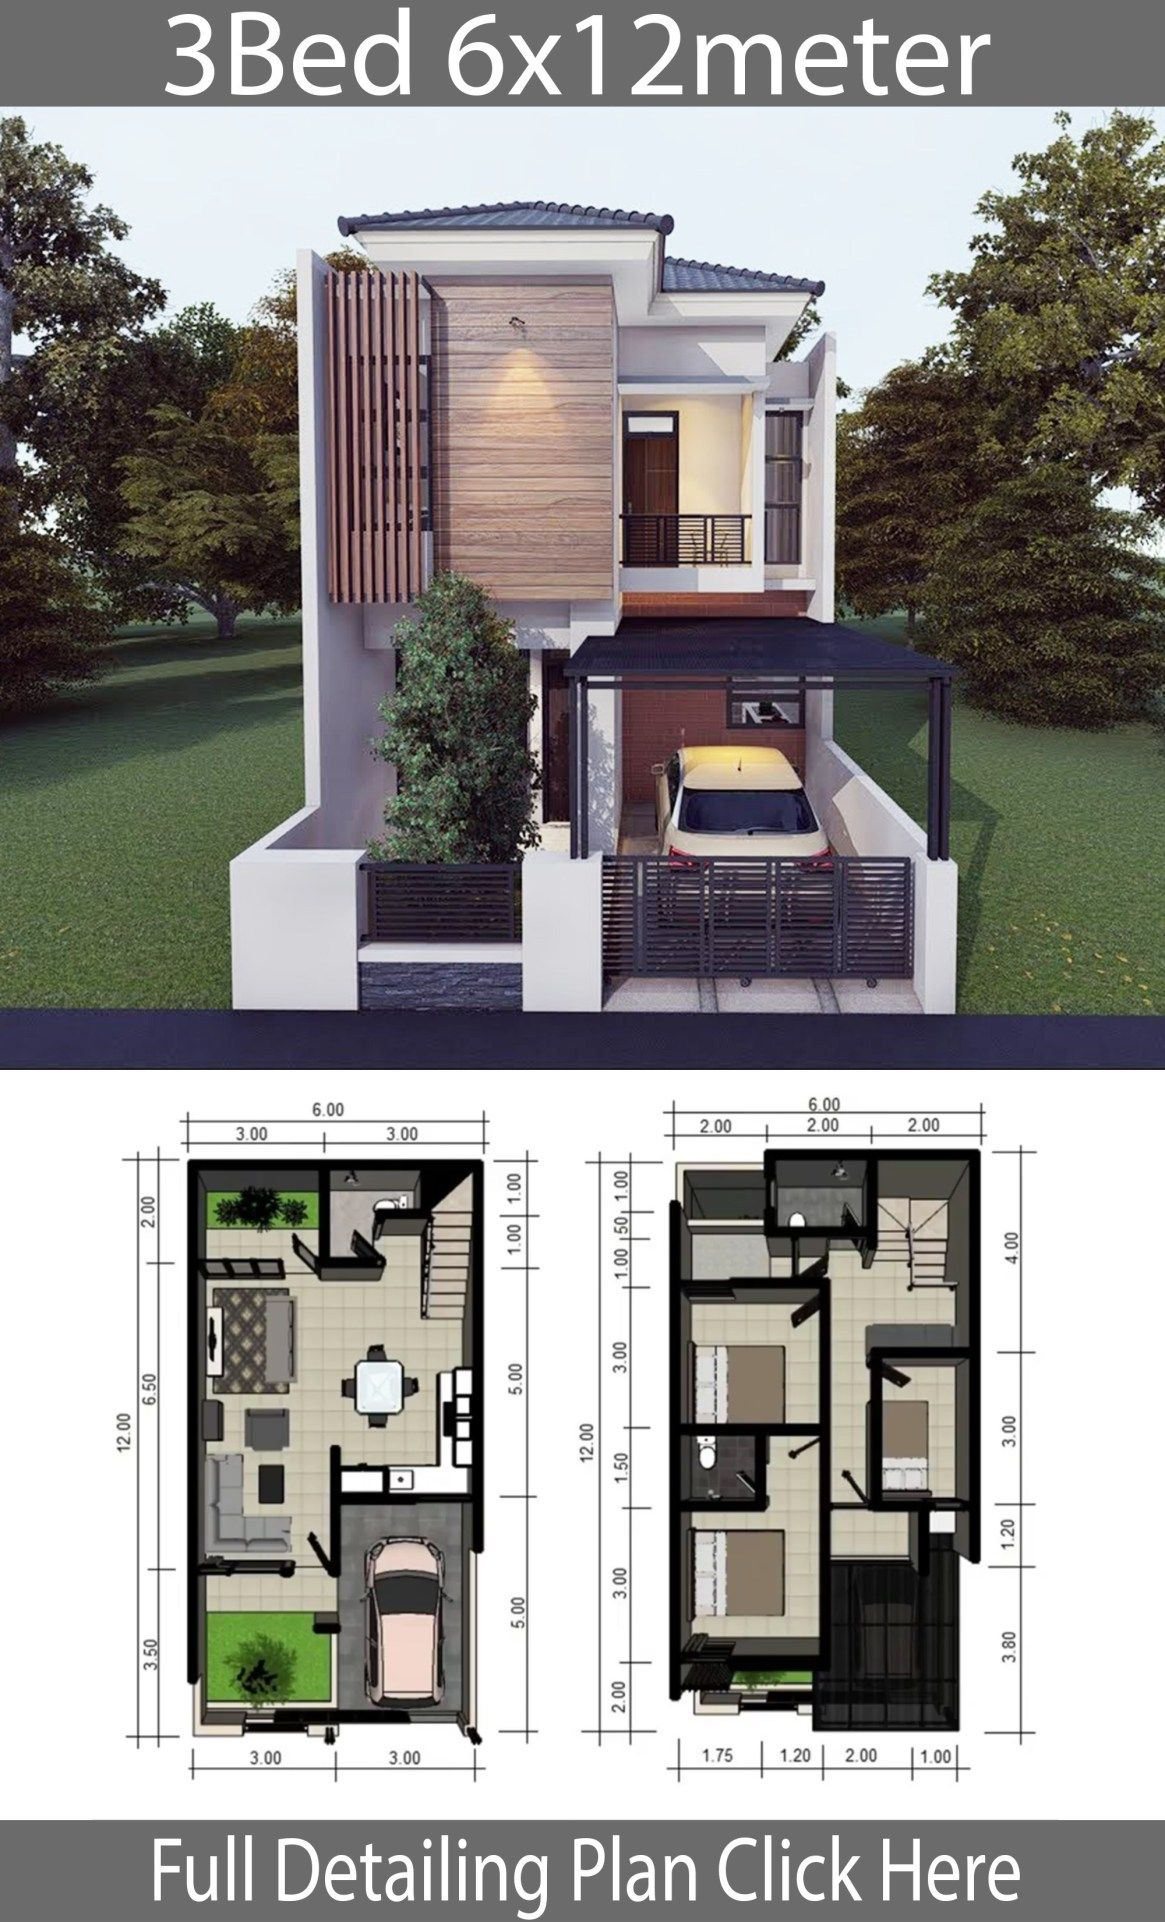 Home Design Plan 6x12m With 3 Bedrooms Home Design With Plansearch Minimalist House Design Architectural House Plans Duplex House Design